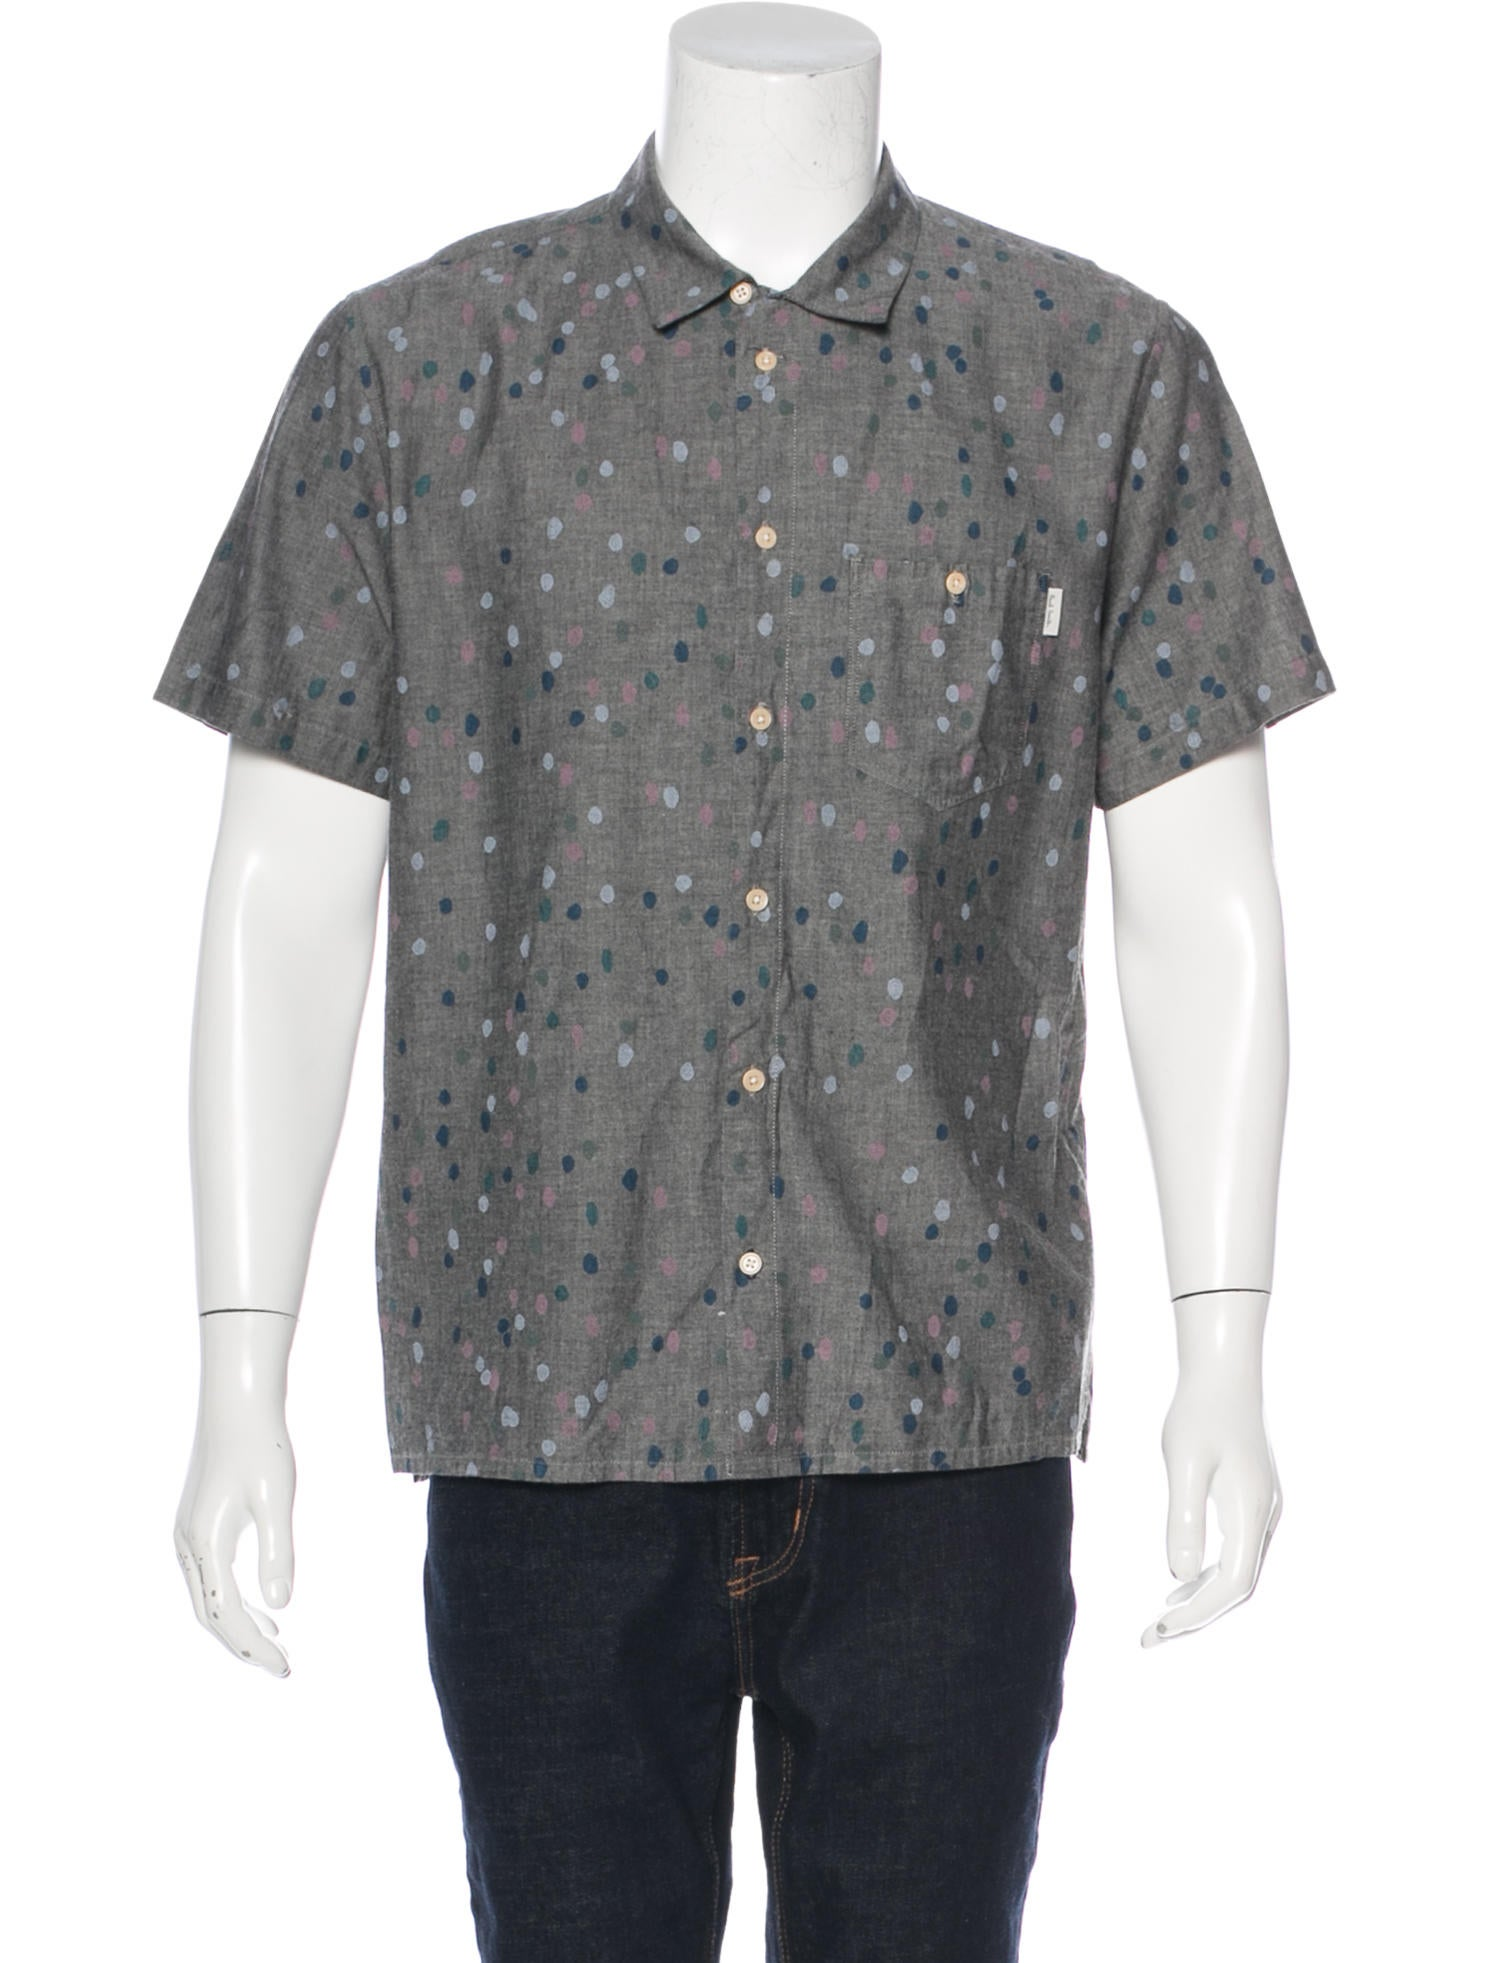 Shop for polka dots shirts mens online at Target. Free shipping on purchases over $35 and save 5% every day with your Target REDcard. skip to main content skip to footer. Men's Polka Dot Short Sleeve Button-Down Shirt - Original Use™ Black.